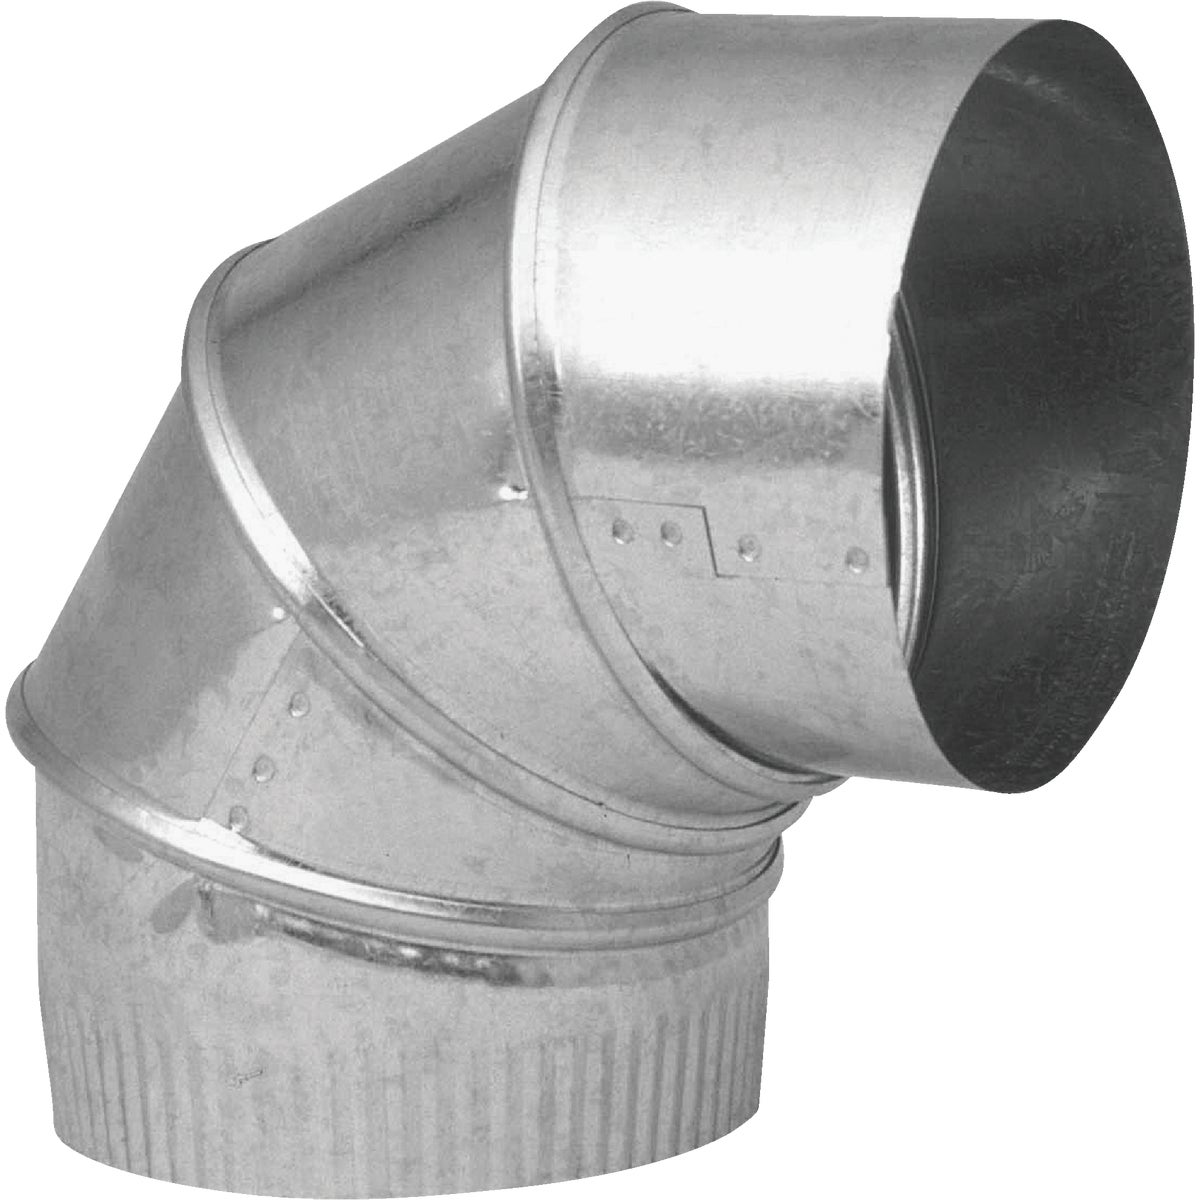 "4"" 28GA GALV ADJ ELBOW - GV0285-C by Imperial Mfg Group"